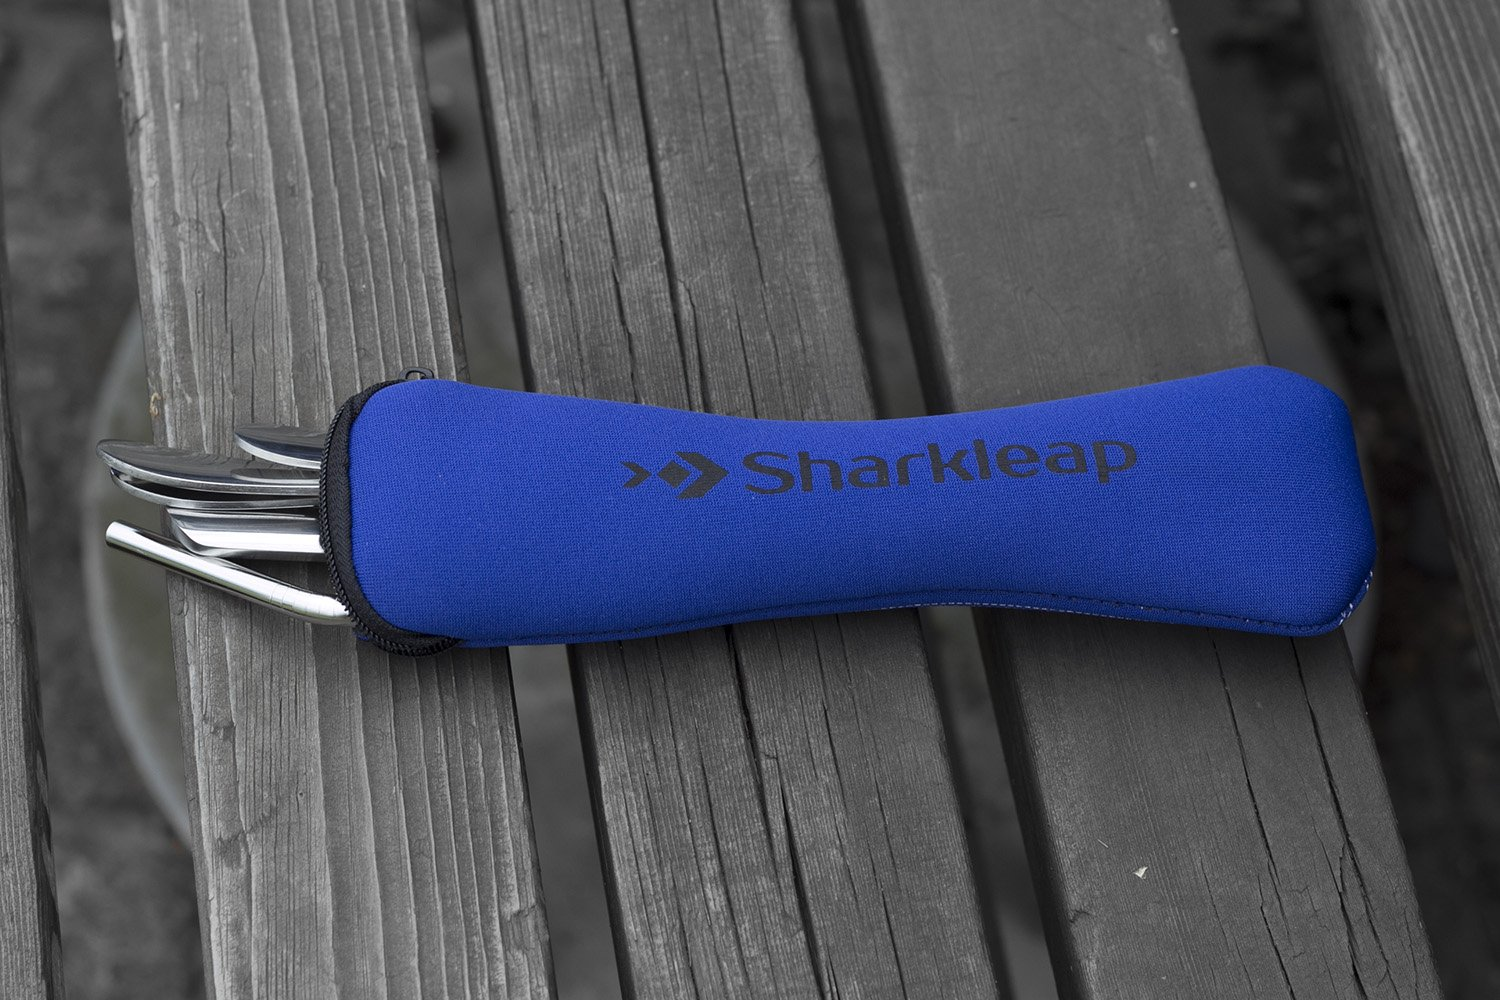 Sharkleap 5 Pieces Stainless Steel Utensil Set with Neoprene Case   Lightweight Cutlery Kit for School, College, Work, Camping and Other Outdoor Activities by Sharkleap (Image #5)